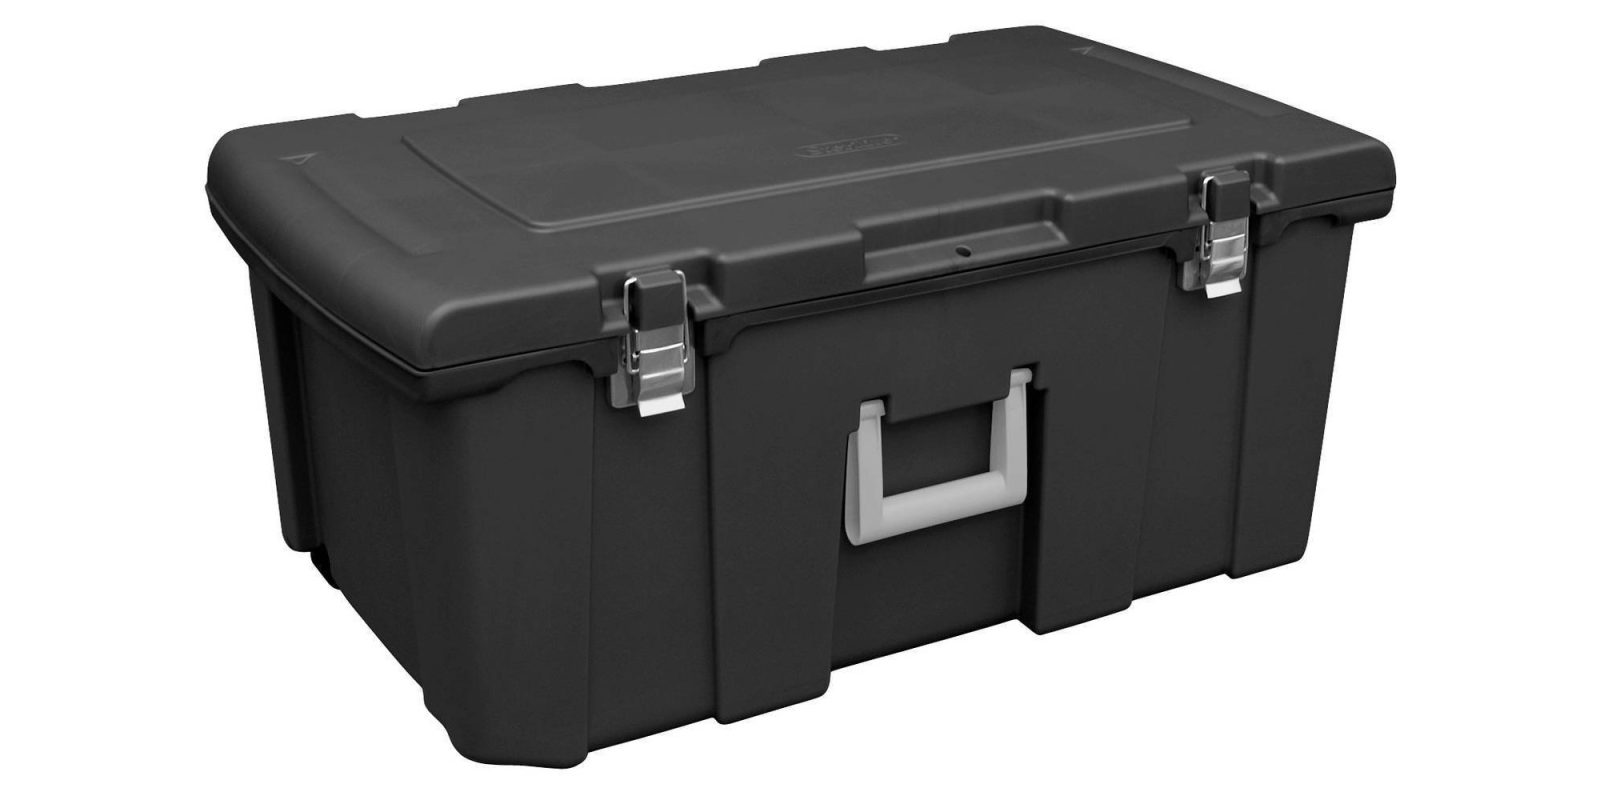 Store your gear in this 16-gallon Sterilite Footlocker for $20 (30% off)